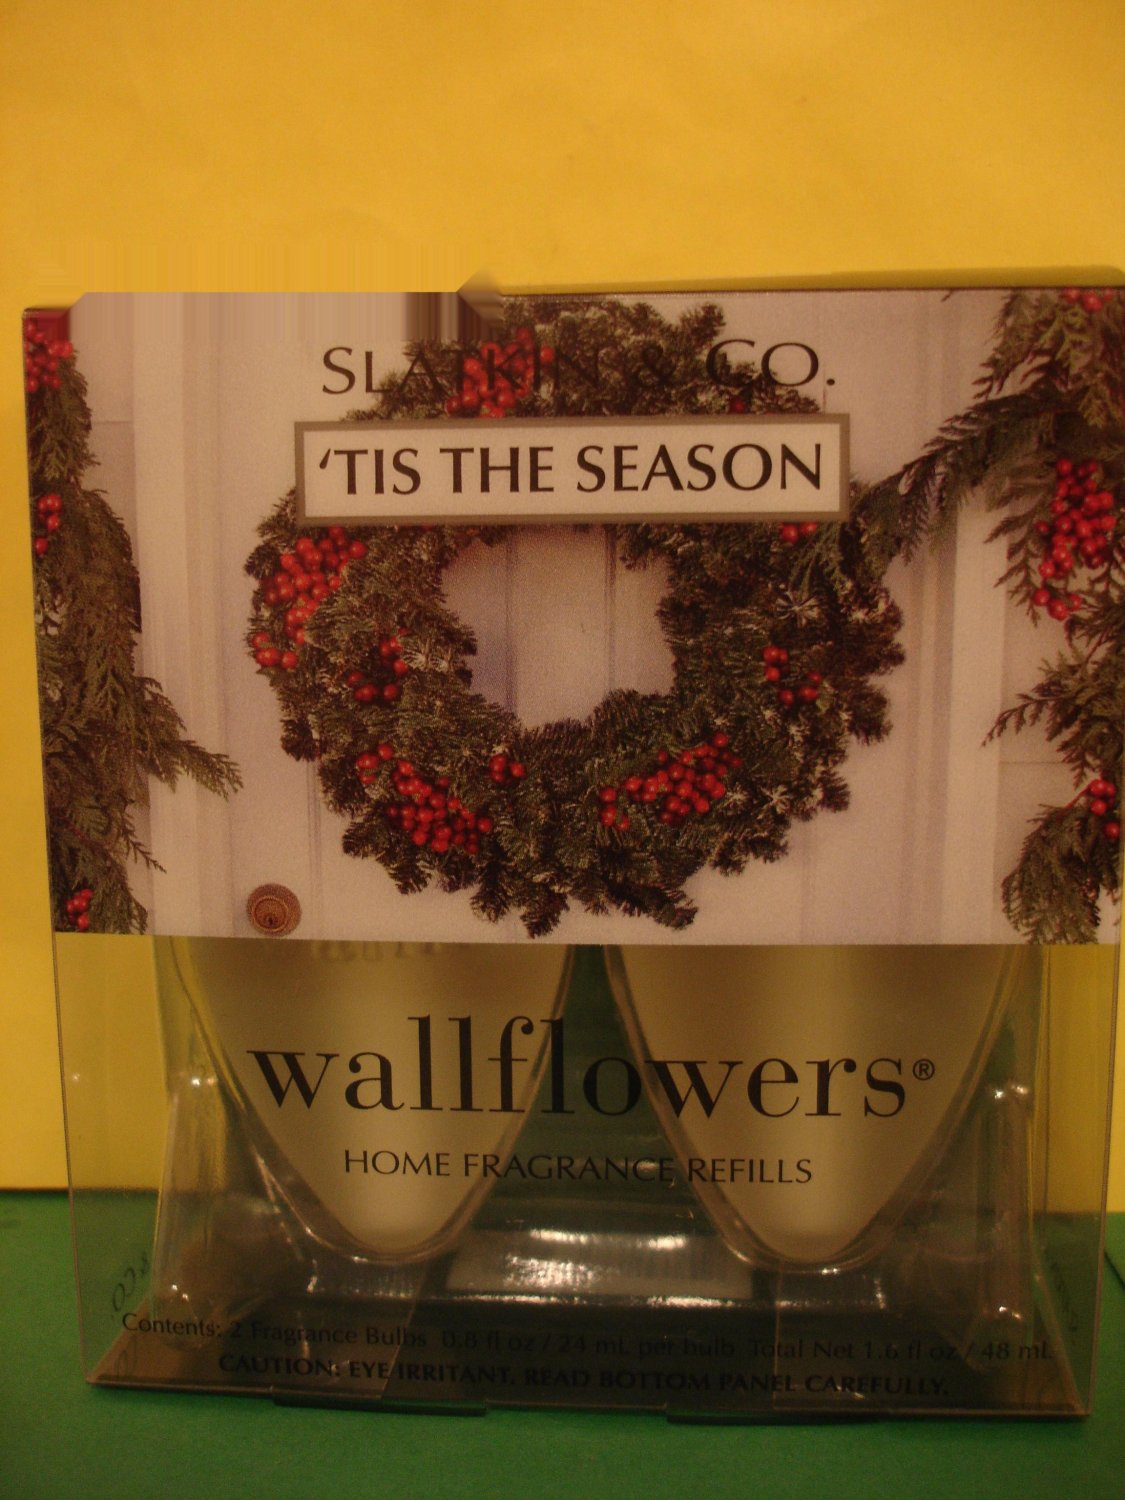 Bath & Body Works 2 Tis The Season Wallflower Refills